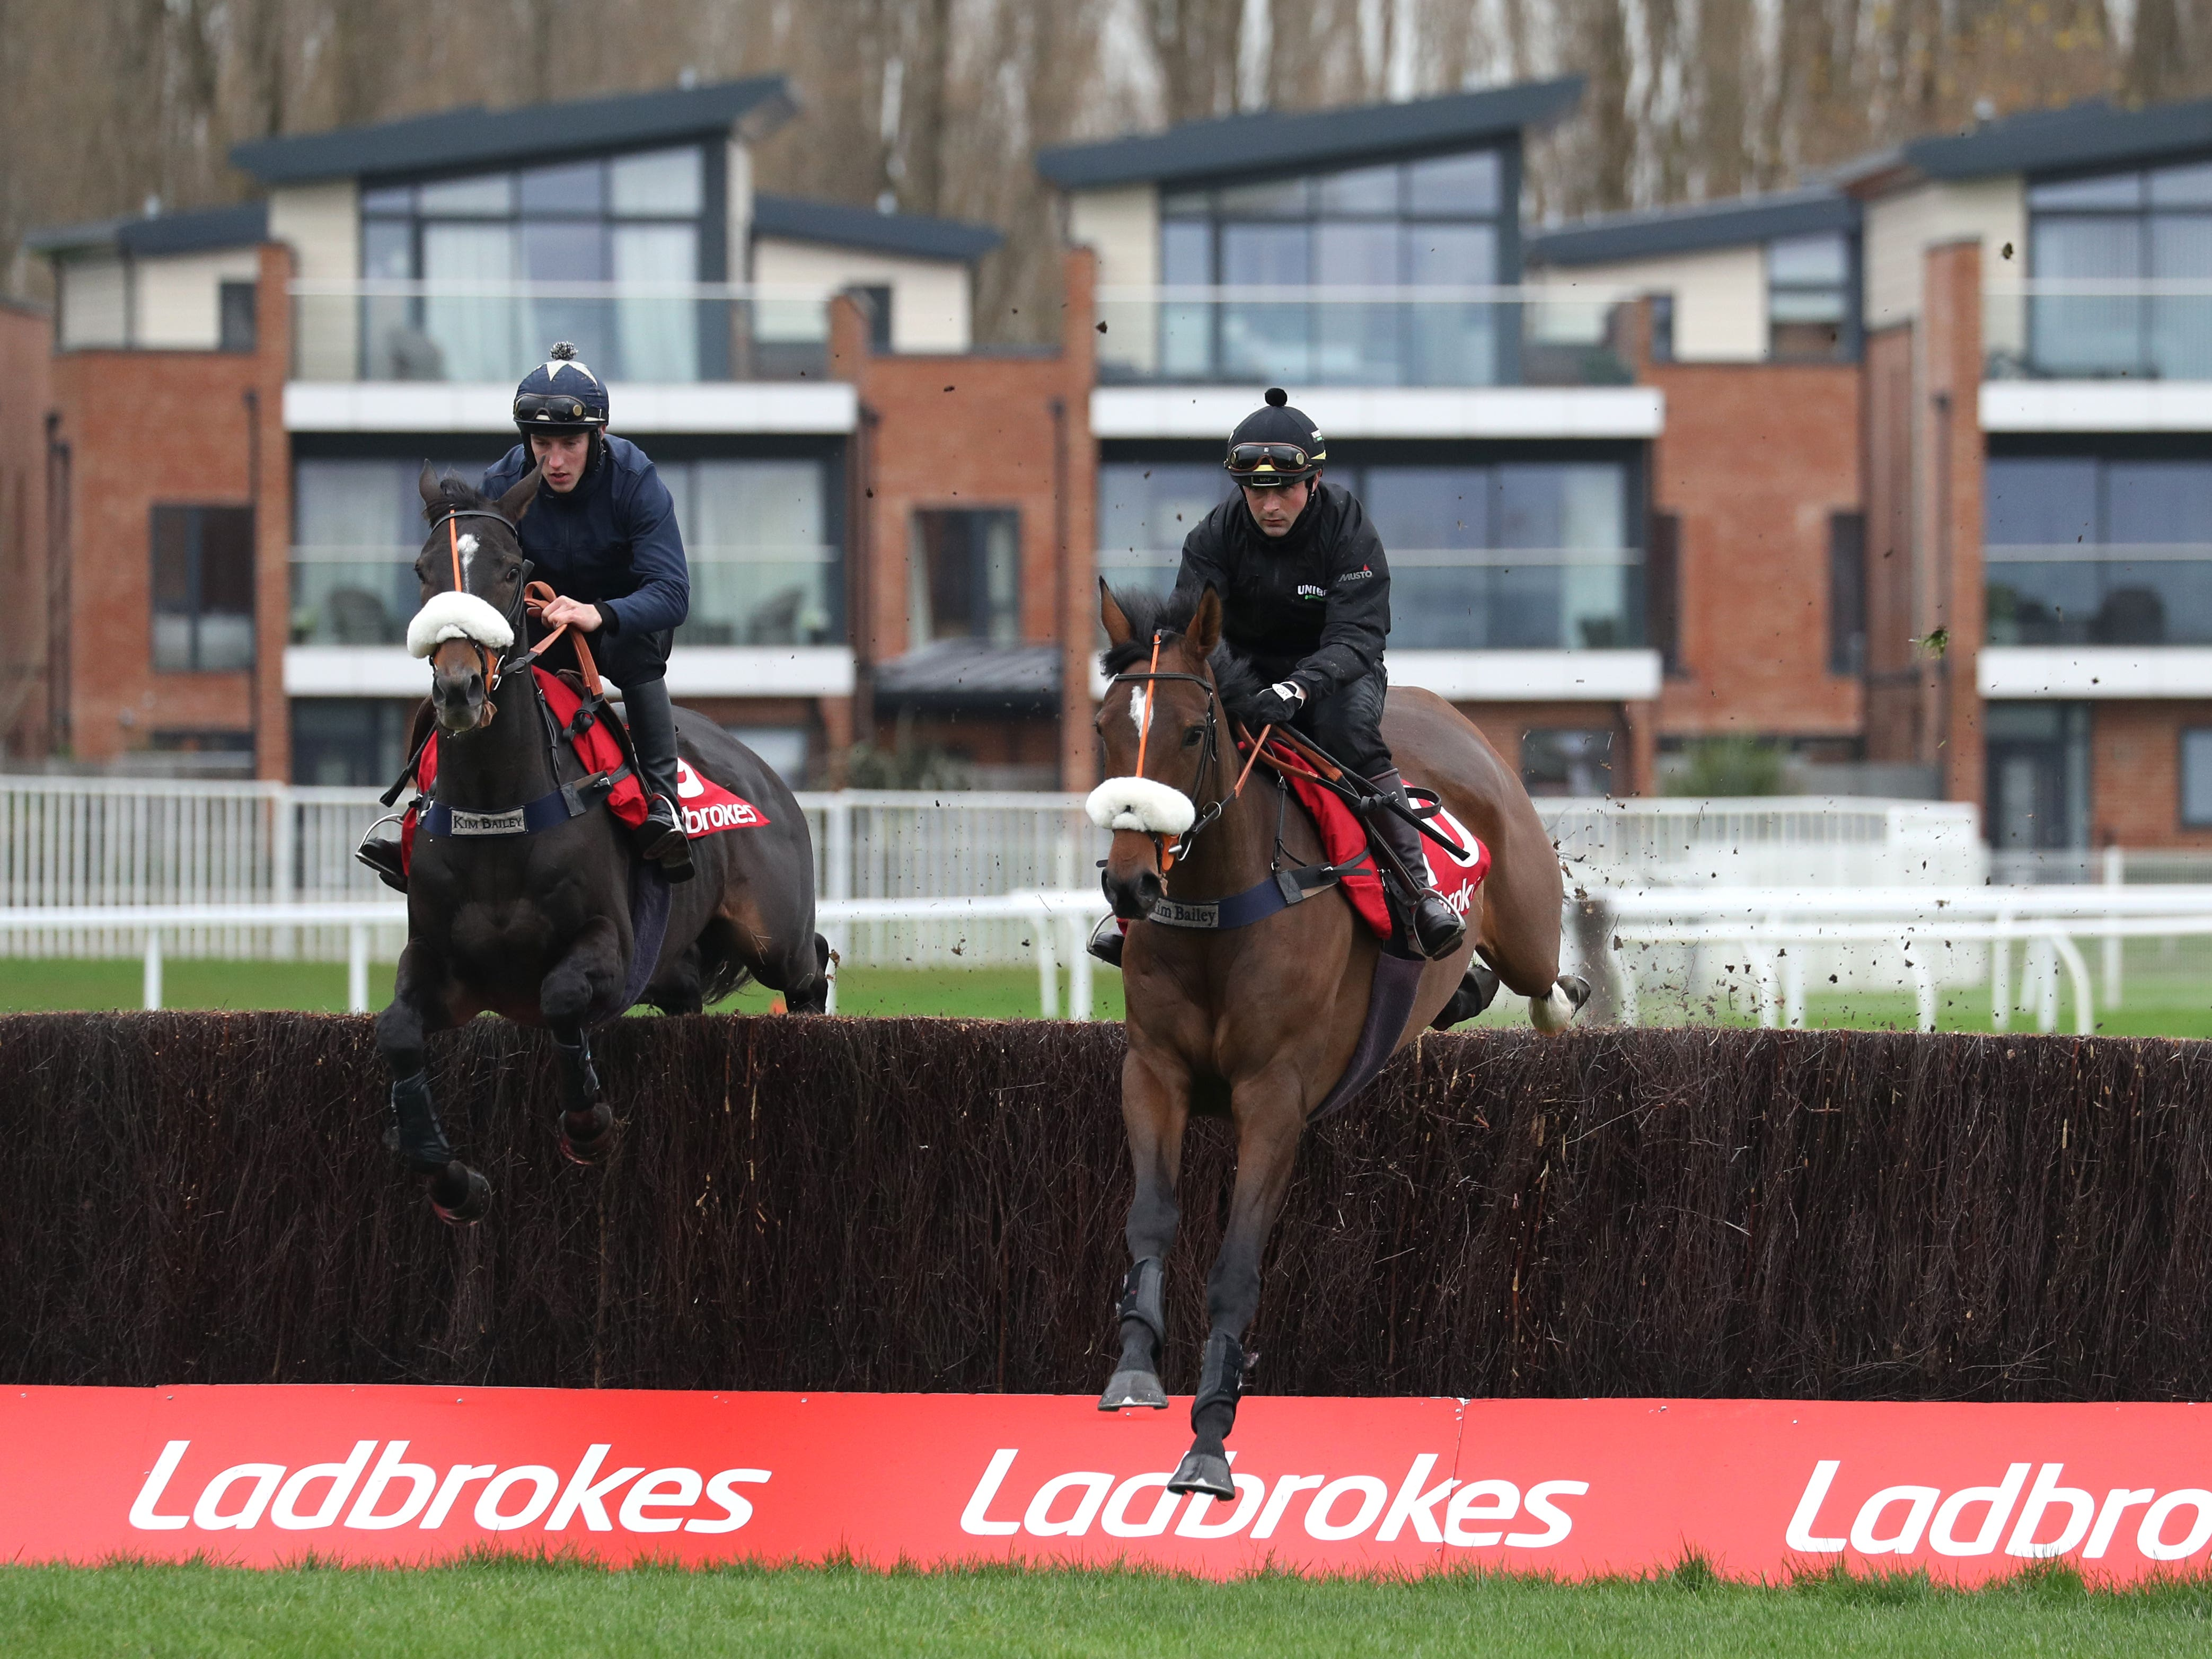 Vinndication (left) did not please everyone with his schooling at Newbury, but trainer is unperturbed about his Ladbrokes Trophy chances (Andrew Matthews/PA)